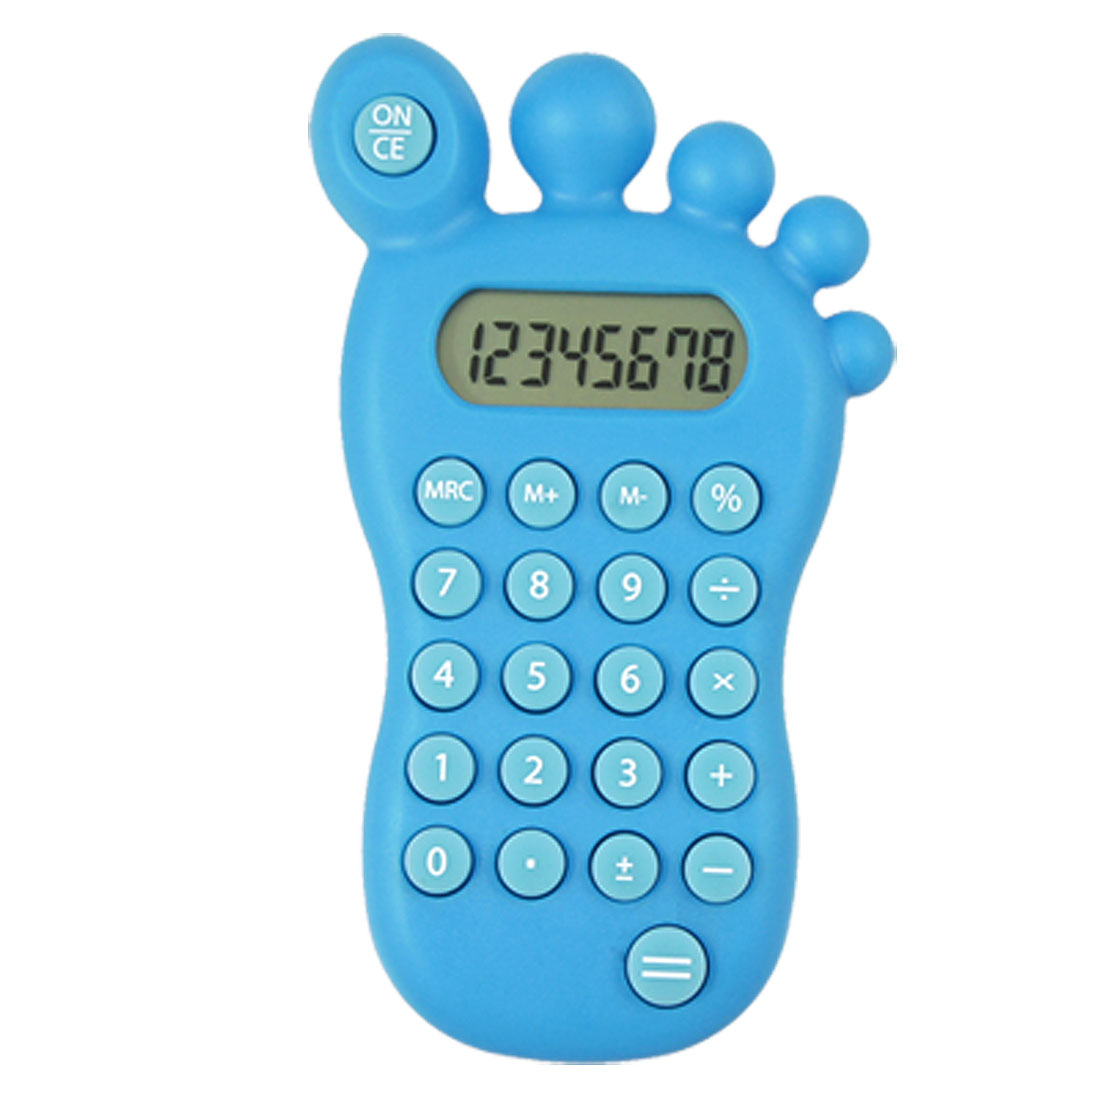 Silicone Rubber Calculator / Promotional product fully customized  to your requirement UK Supplier